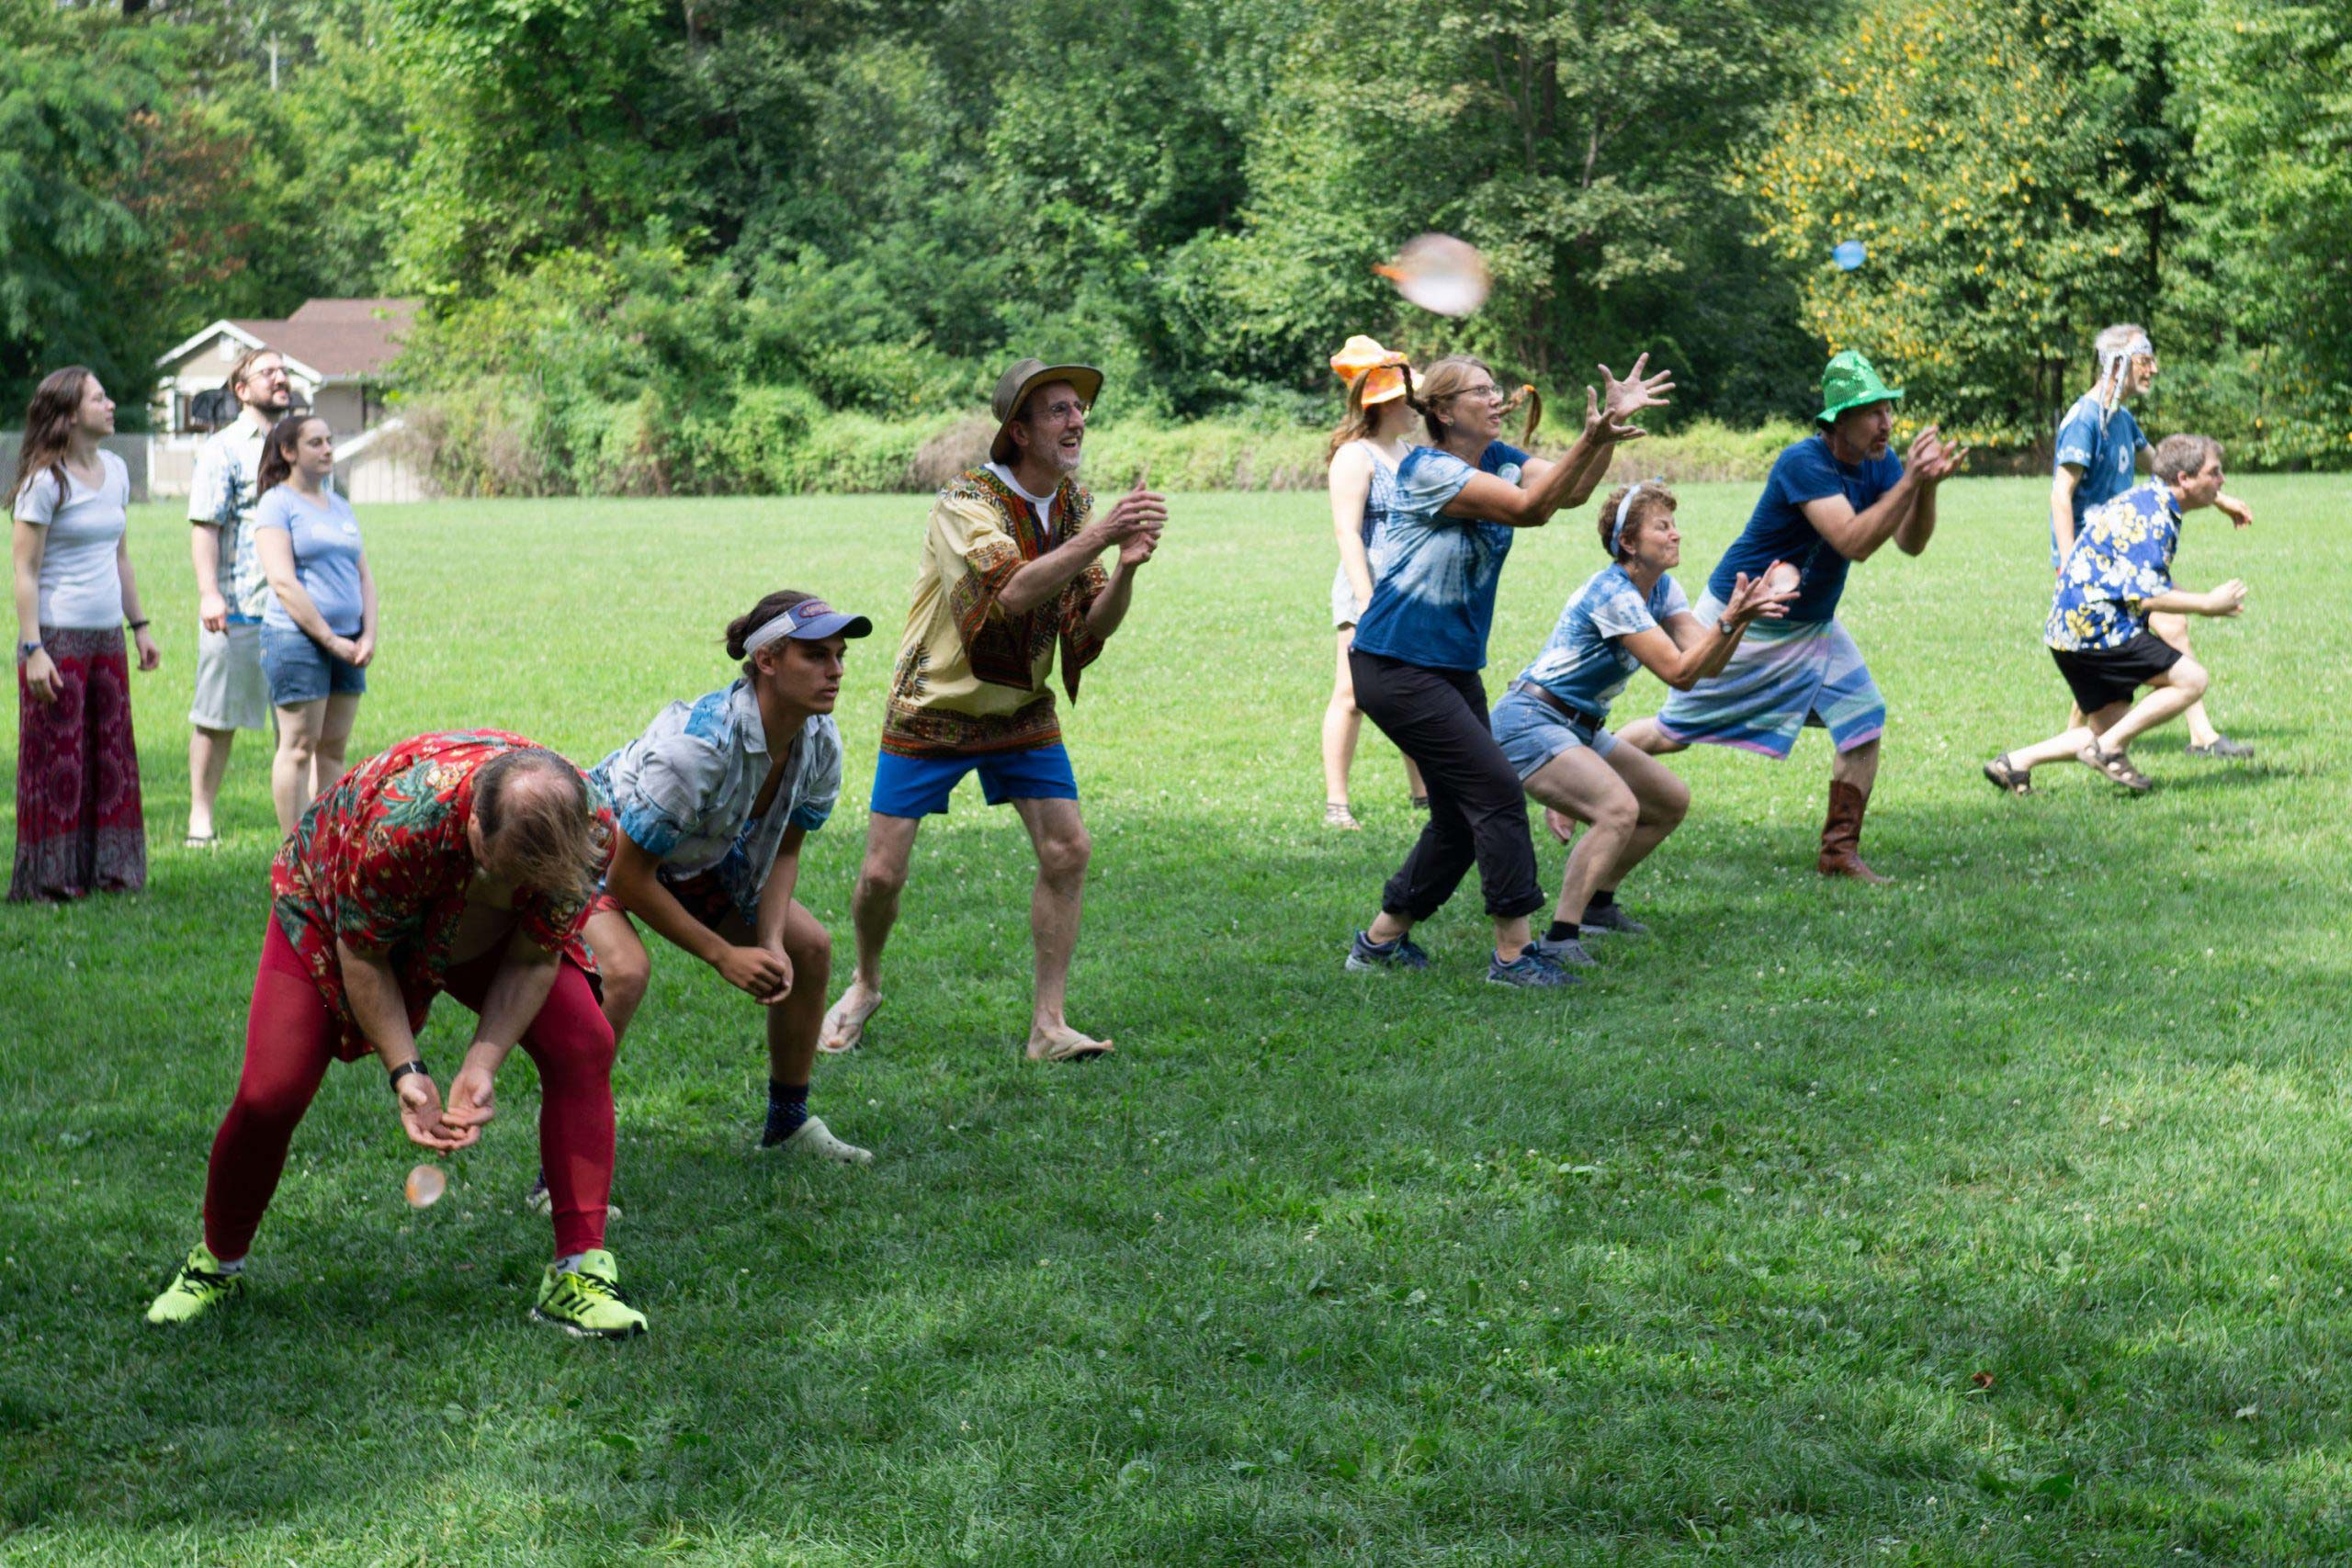 Campers play a game with water balloons